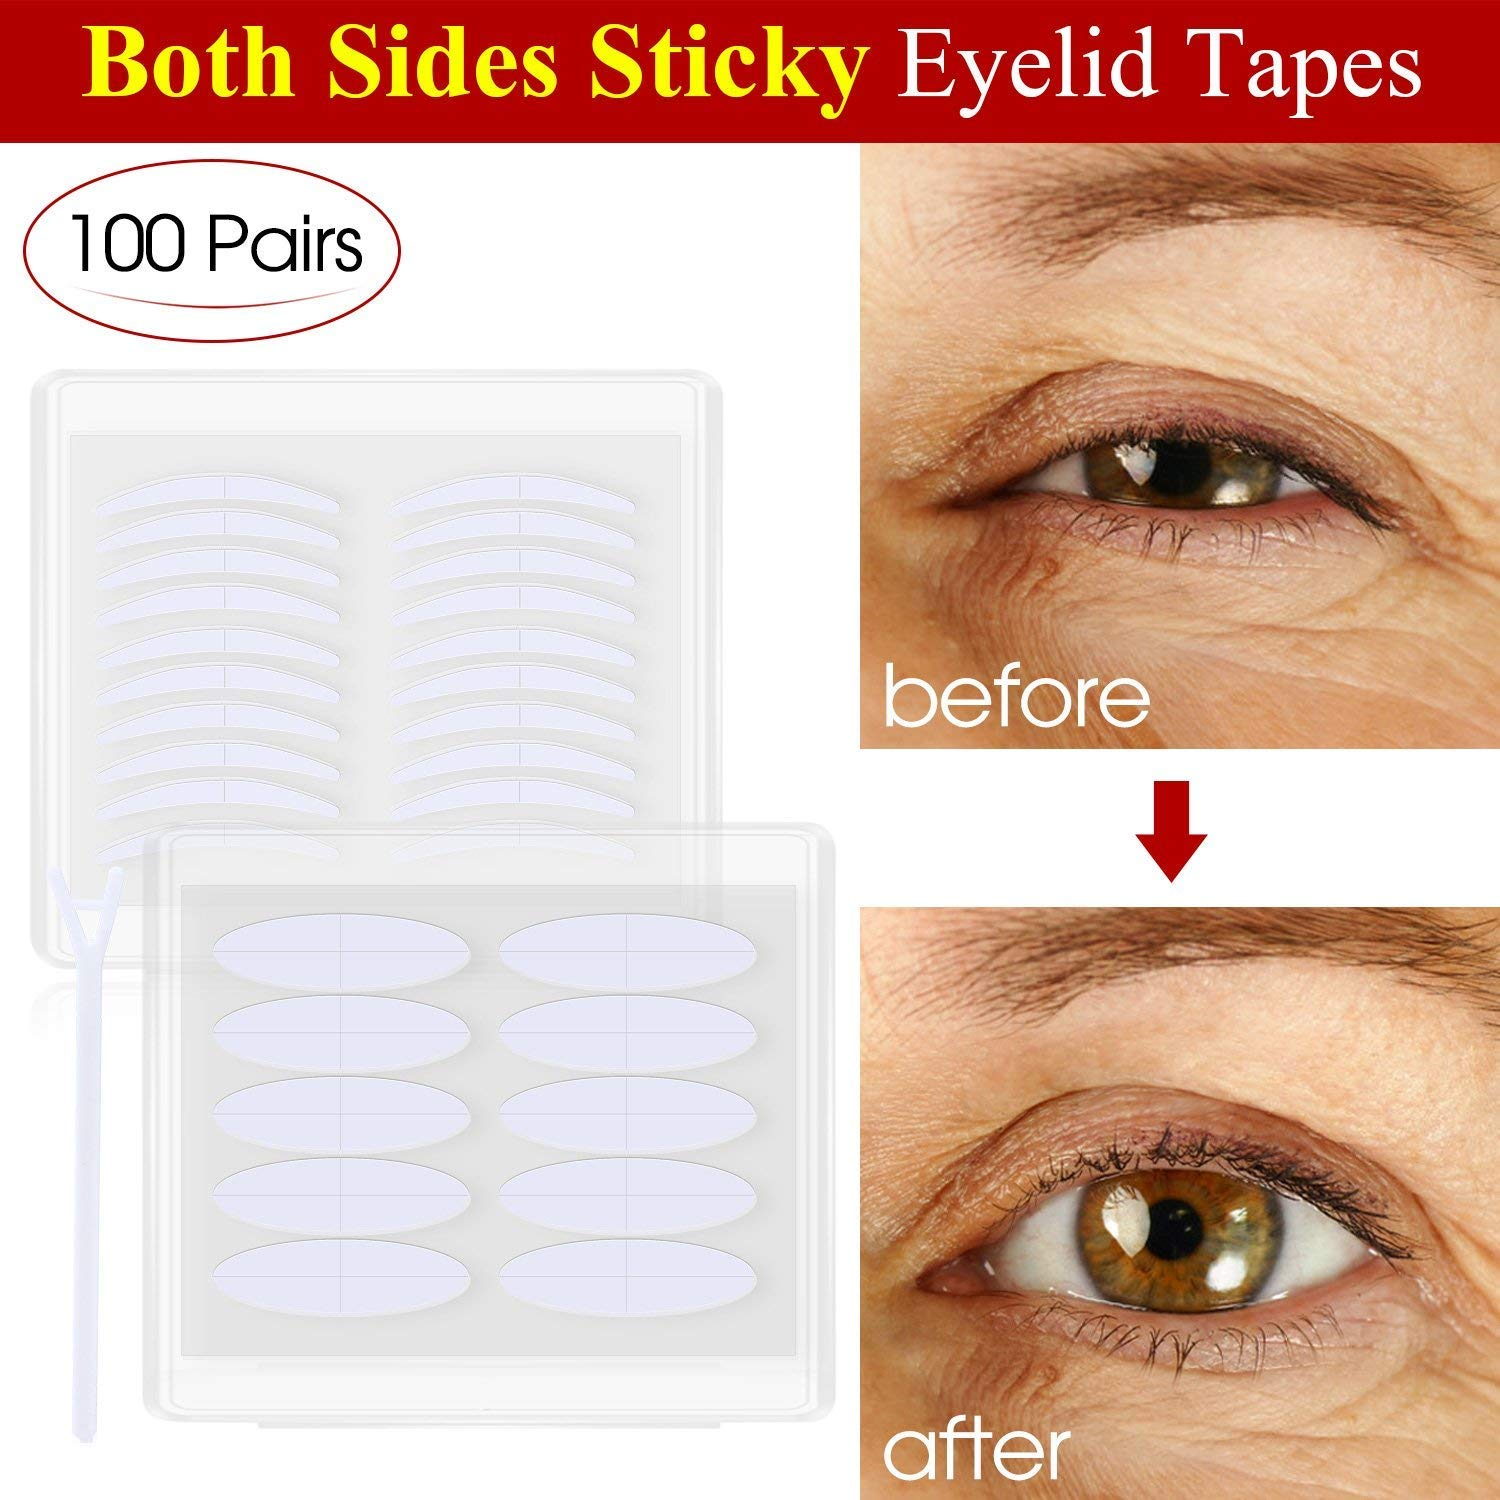 Both Sides Sticky Ultra Invisible Double Eyelid Tape Stickers Instant Eyelid Lift Without Surgery, Medical Grade Latex Free Hypoallergenic (100 Pairs, Wide+Slim) CN